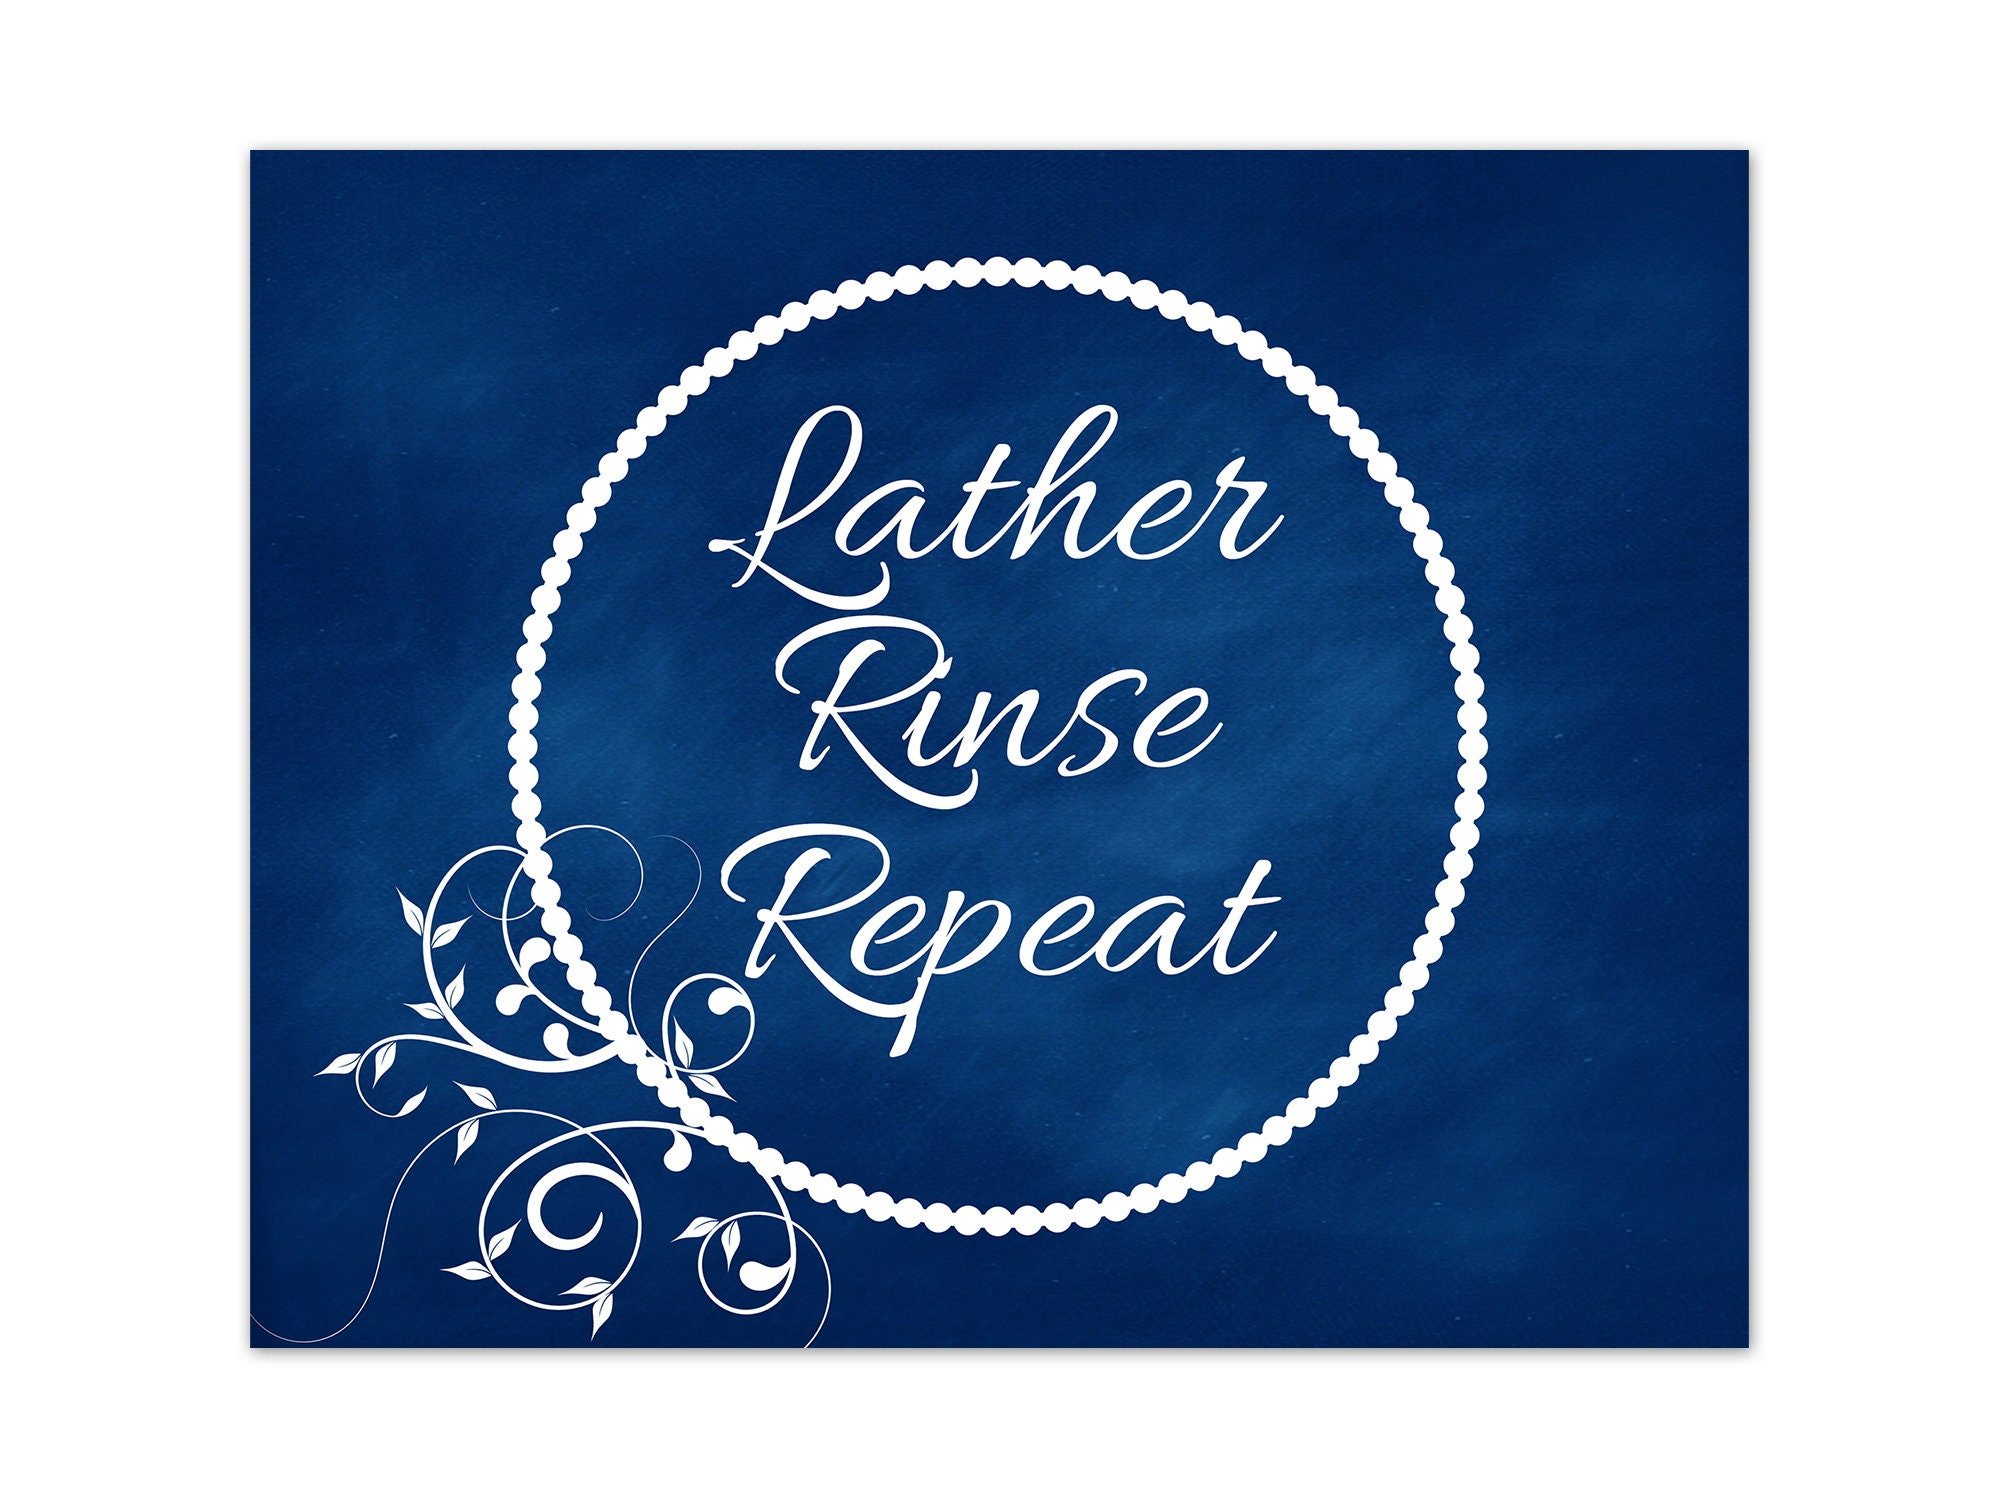 Lather rinse repeat bathroom quotes wall art navy bathroom decor bathroom canvas bathroom wall art prints guest bathroom decor bath213